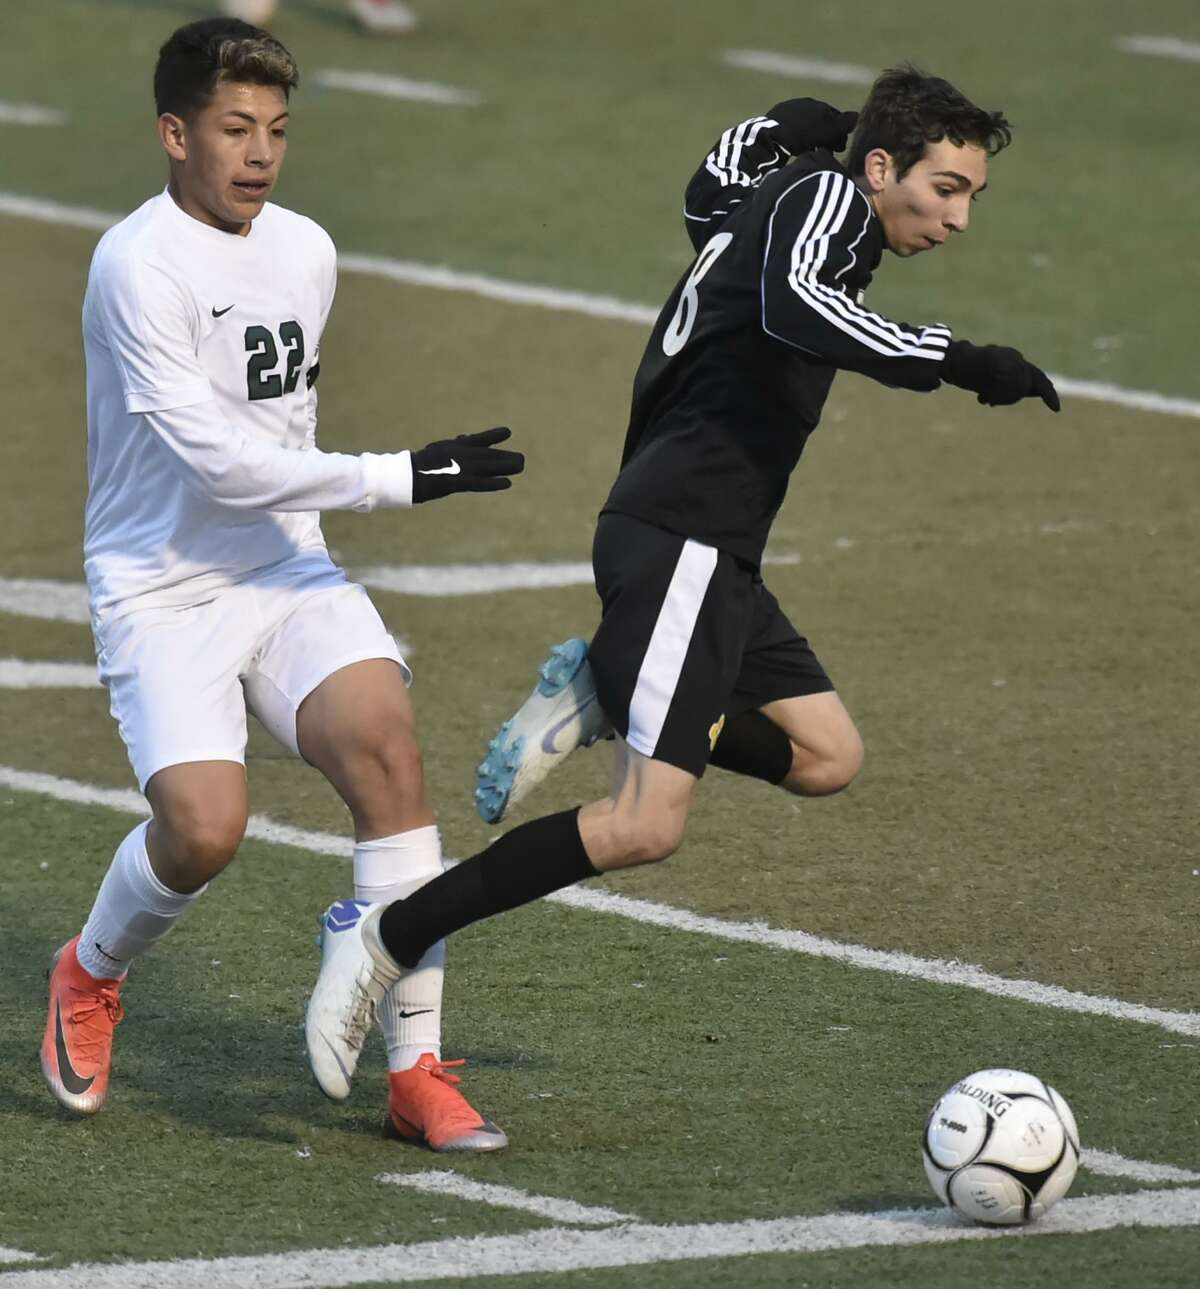 Middletown, Connecticut - November 18, 2018: Daniel Hand H.S. of Madison vs. Maloney H.S. of Meriden during the second-half of the CIAC 2018 State Boys Class L Soccer Tournament Finals Sunday at Middletown High School. Daniel Hand H.S. defeats Maloney H.S. 1-0.